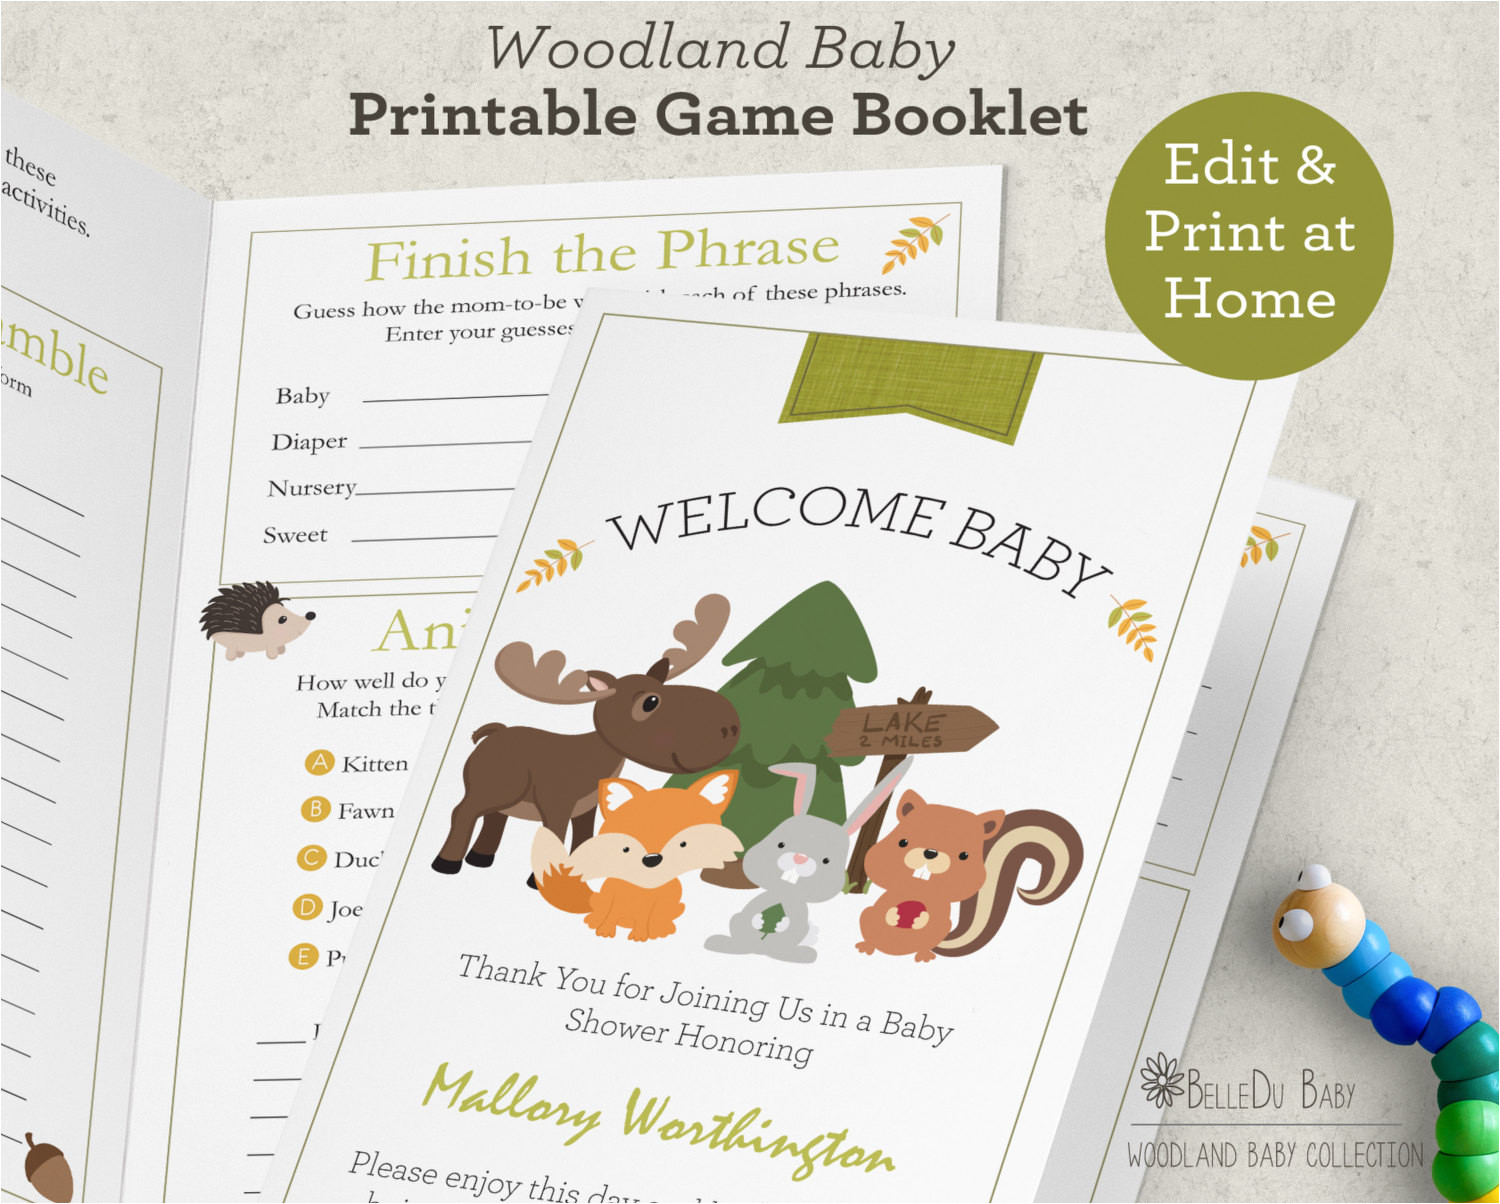 Baby Shower Game Booklet Template Baby Shower Game Booklet Template Pictures to Pin On